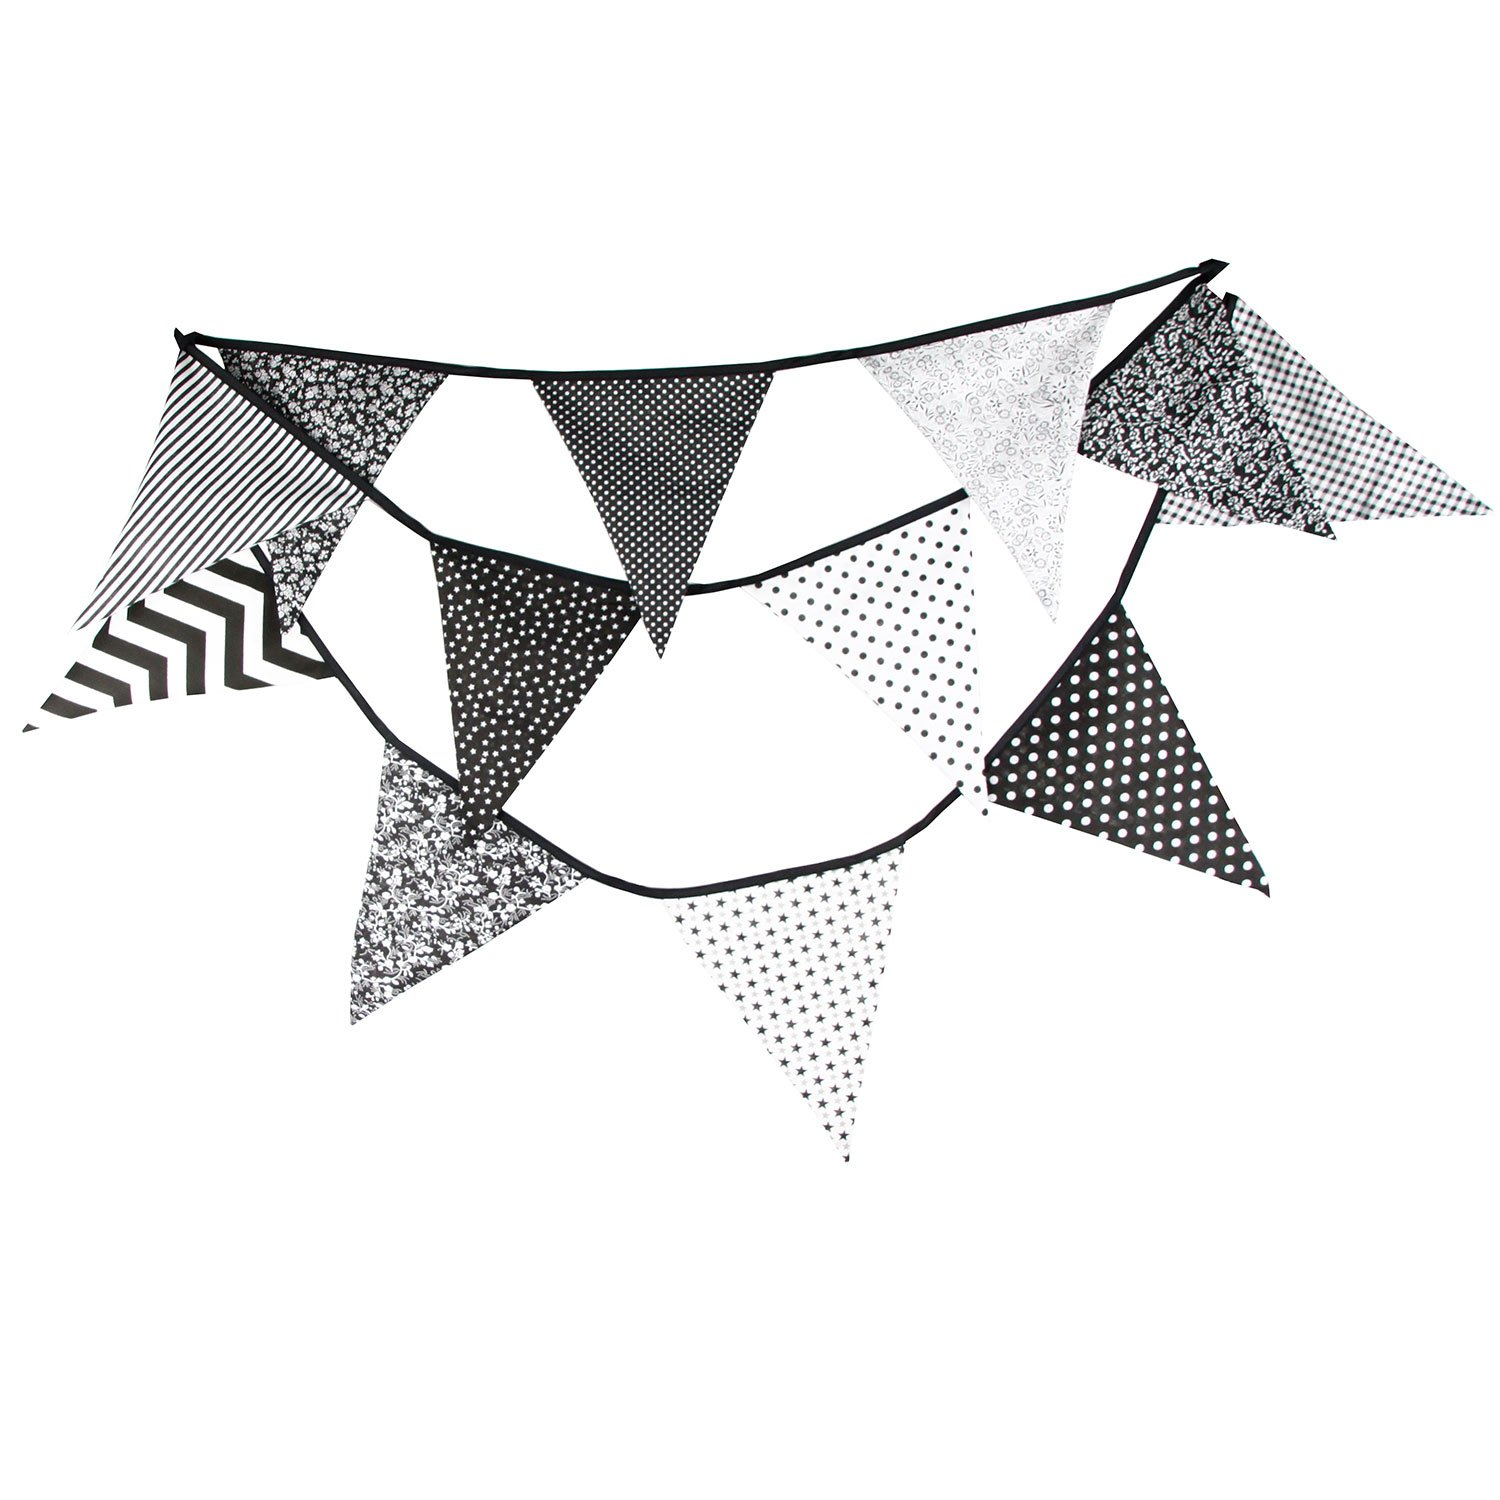 Birthday Party Red /& Brown Outdoor /& Home Decoration INFEI 3.5M//11.5Ft Multicolored Rural Floral Triangle Flags Fabric Banner Bunting Garlands for Wedding